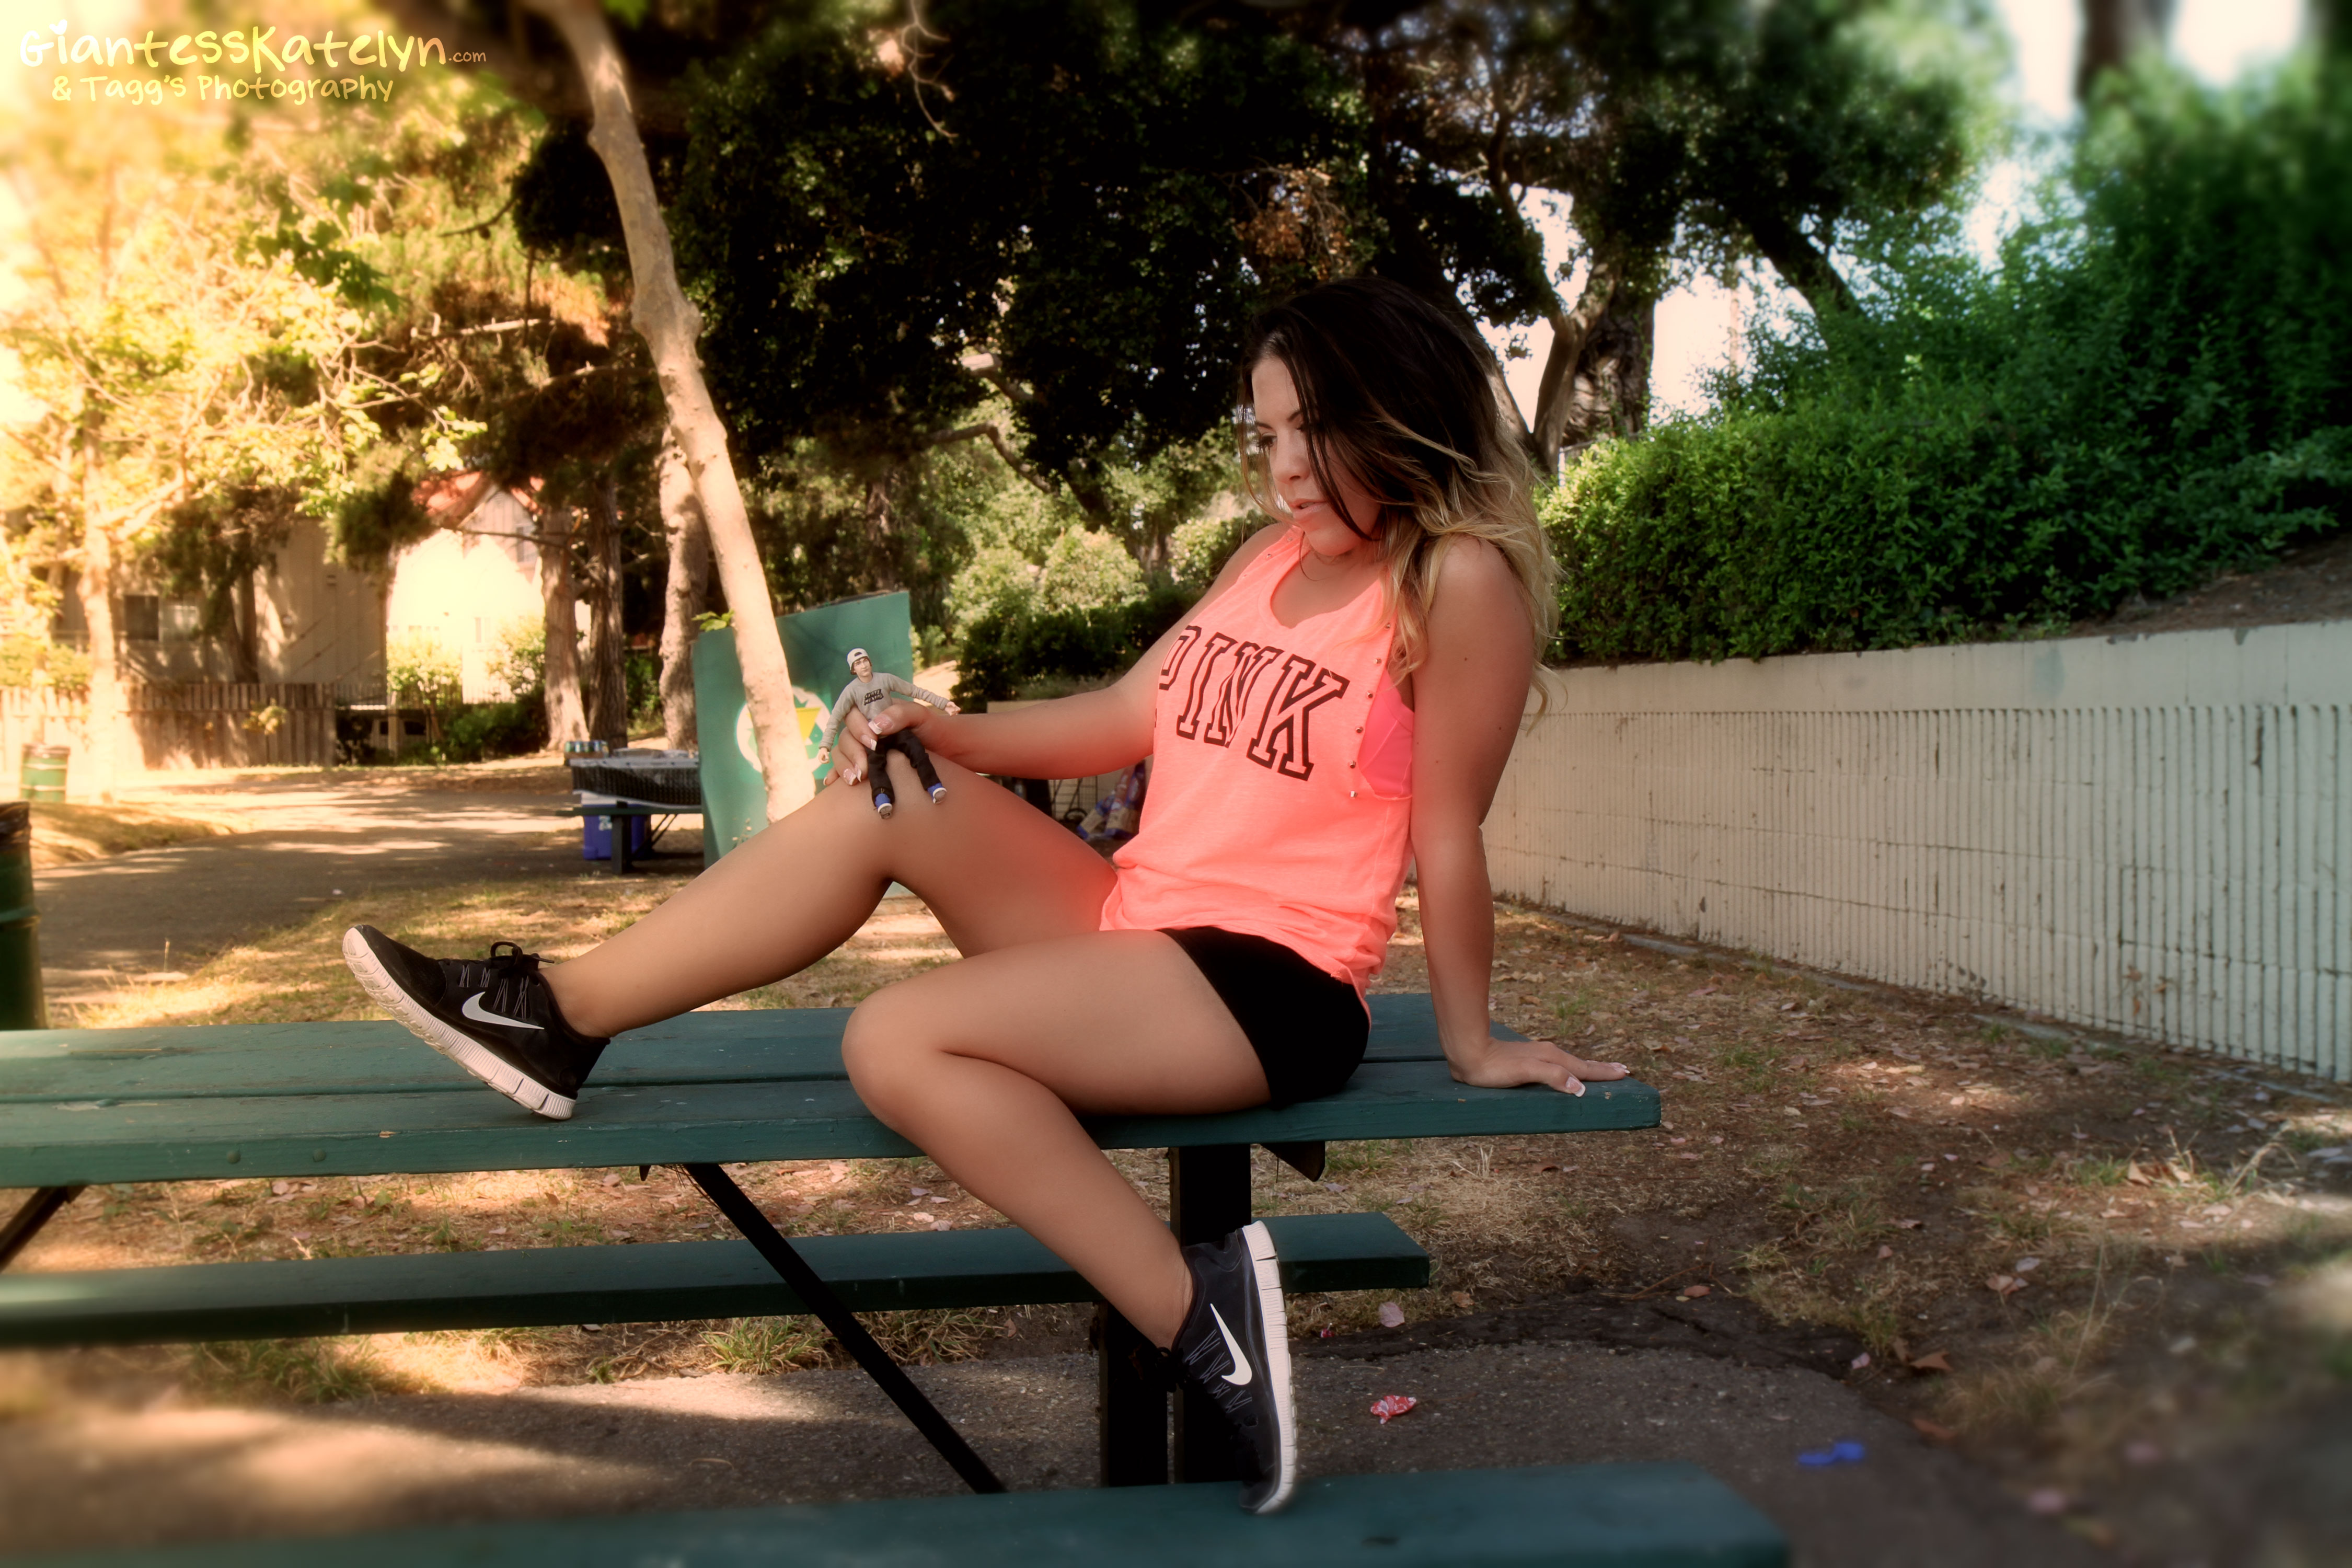 At_The_Park_with_Giantess_Katelyn-01